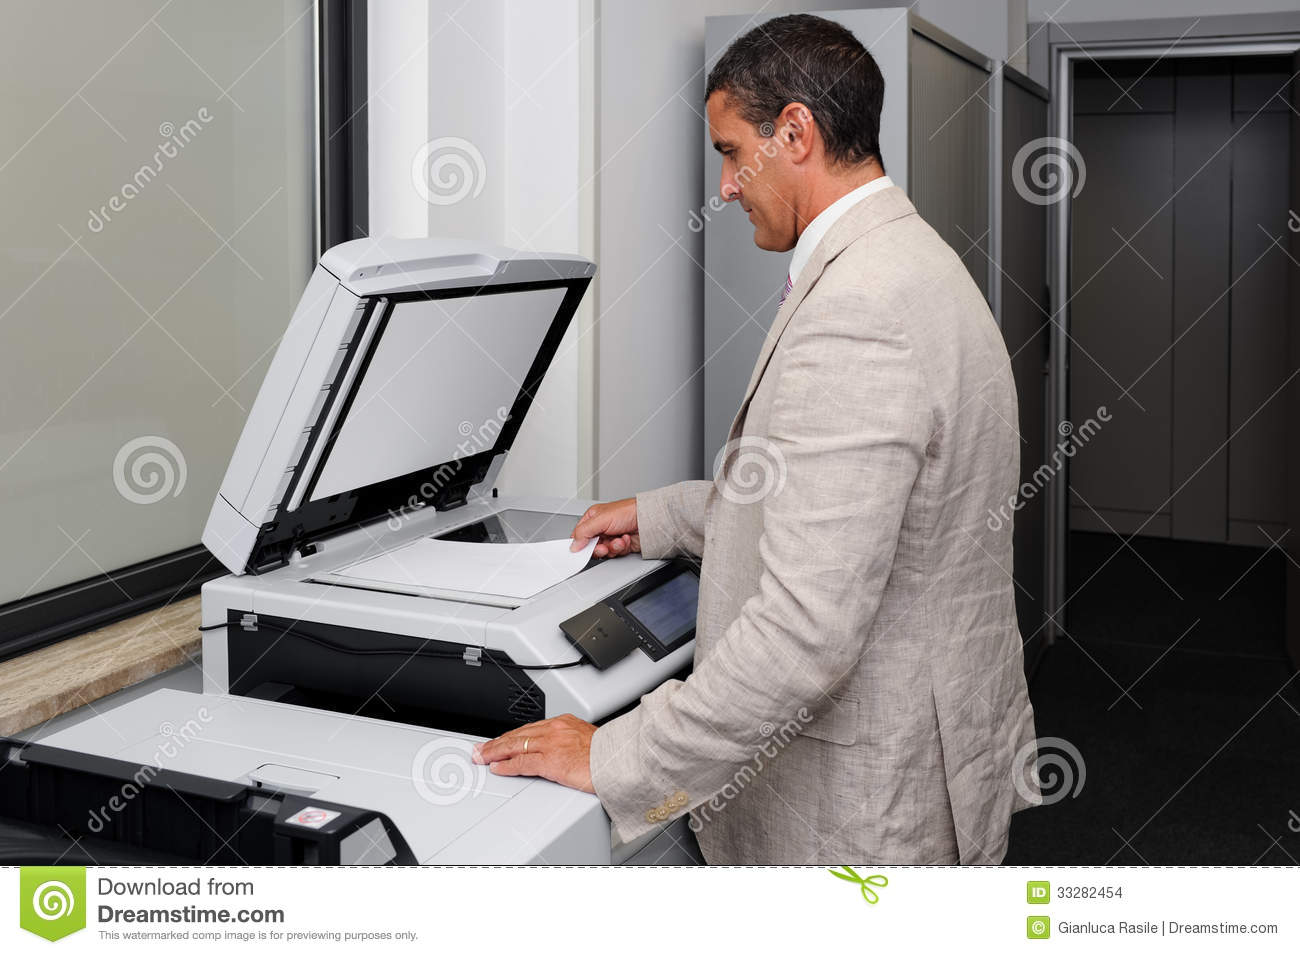 4 Pics 1 Word Answers 6 Letters Pt 4 - What s The Word Answers Who makes the best photocopiers